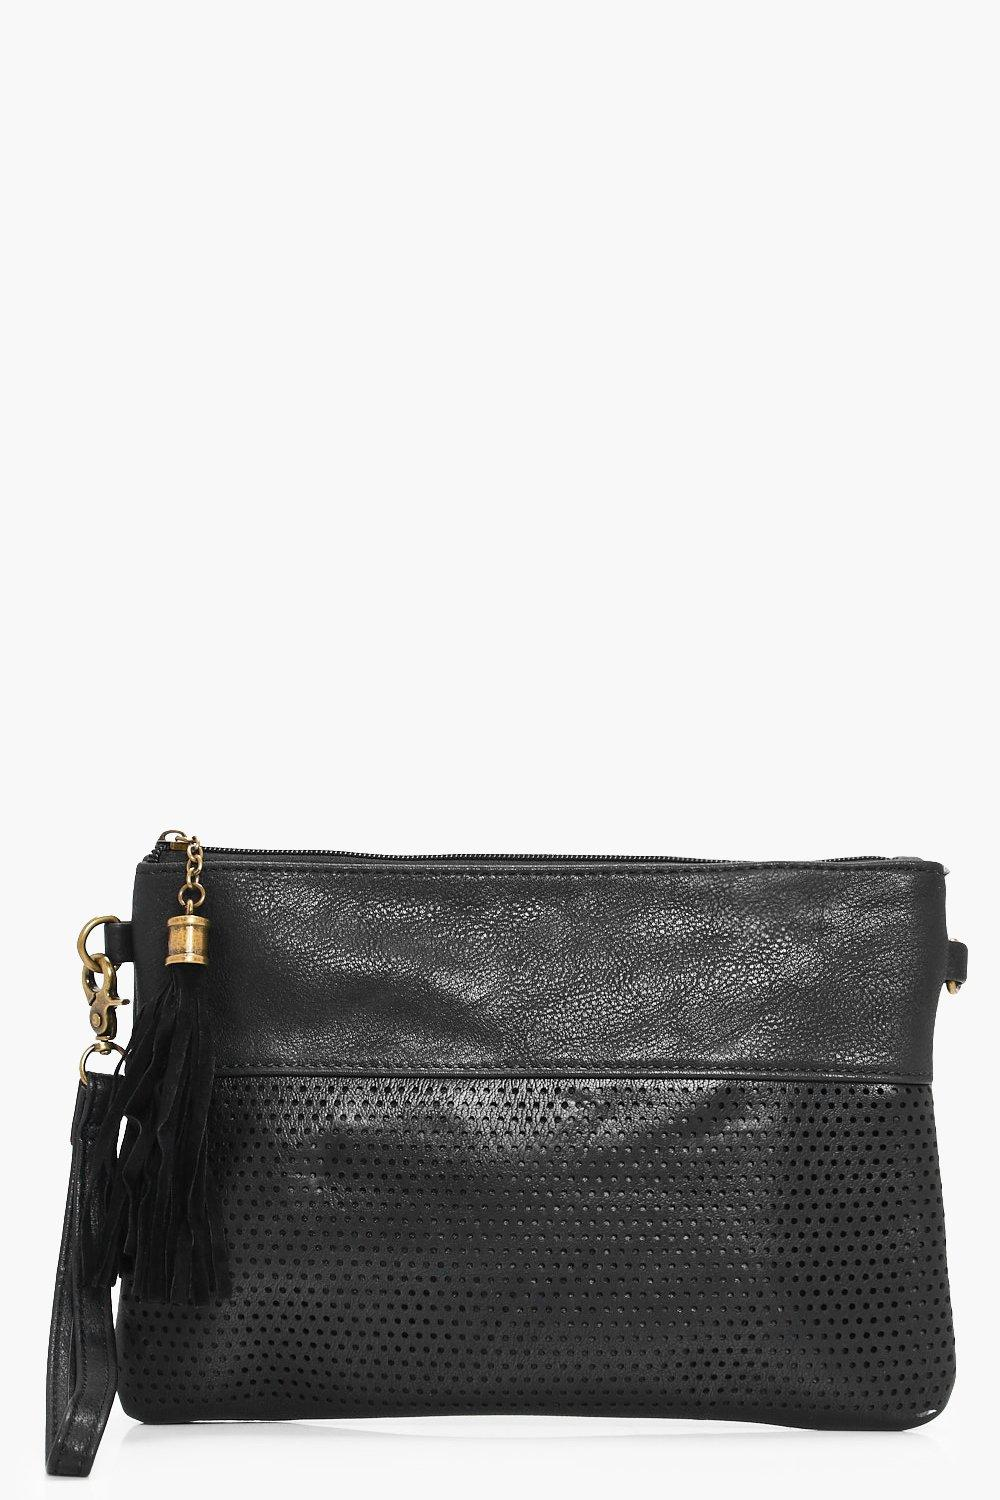 Perforated Zip Top Clutch - black - Holly Perforat